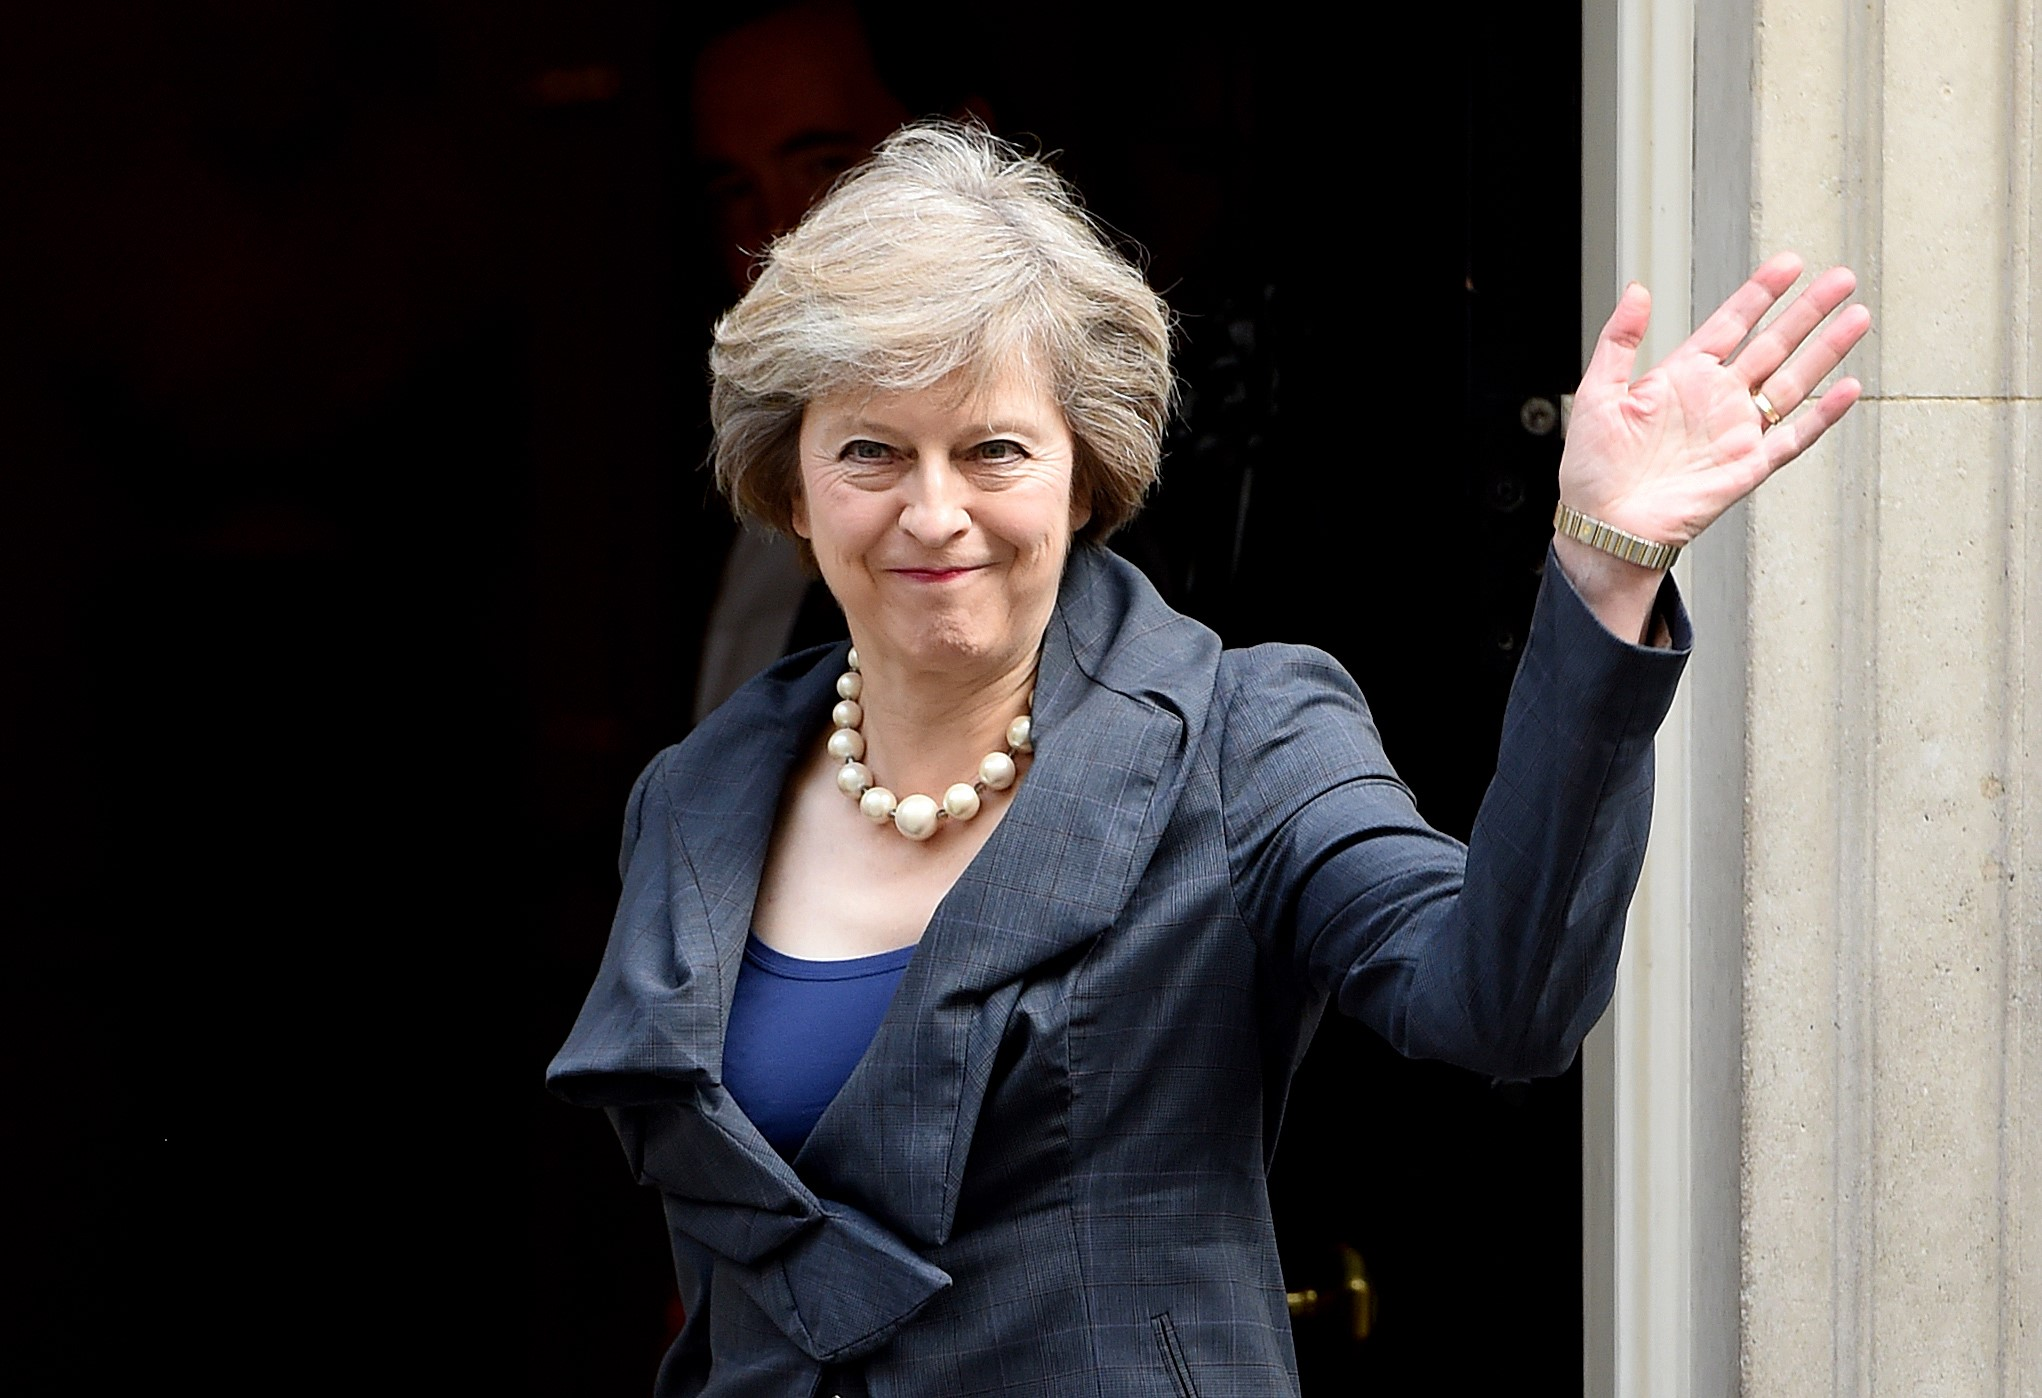 Theresa May arrives for David Cameron's final cabinet meeting before she takes over and appoints a new office, in London, on July 12, 2016.